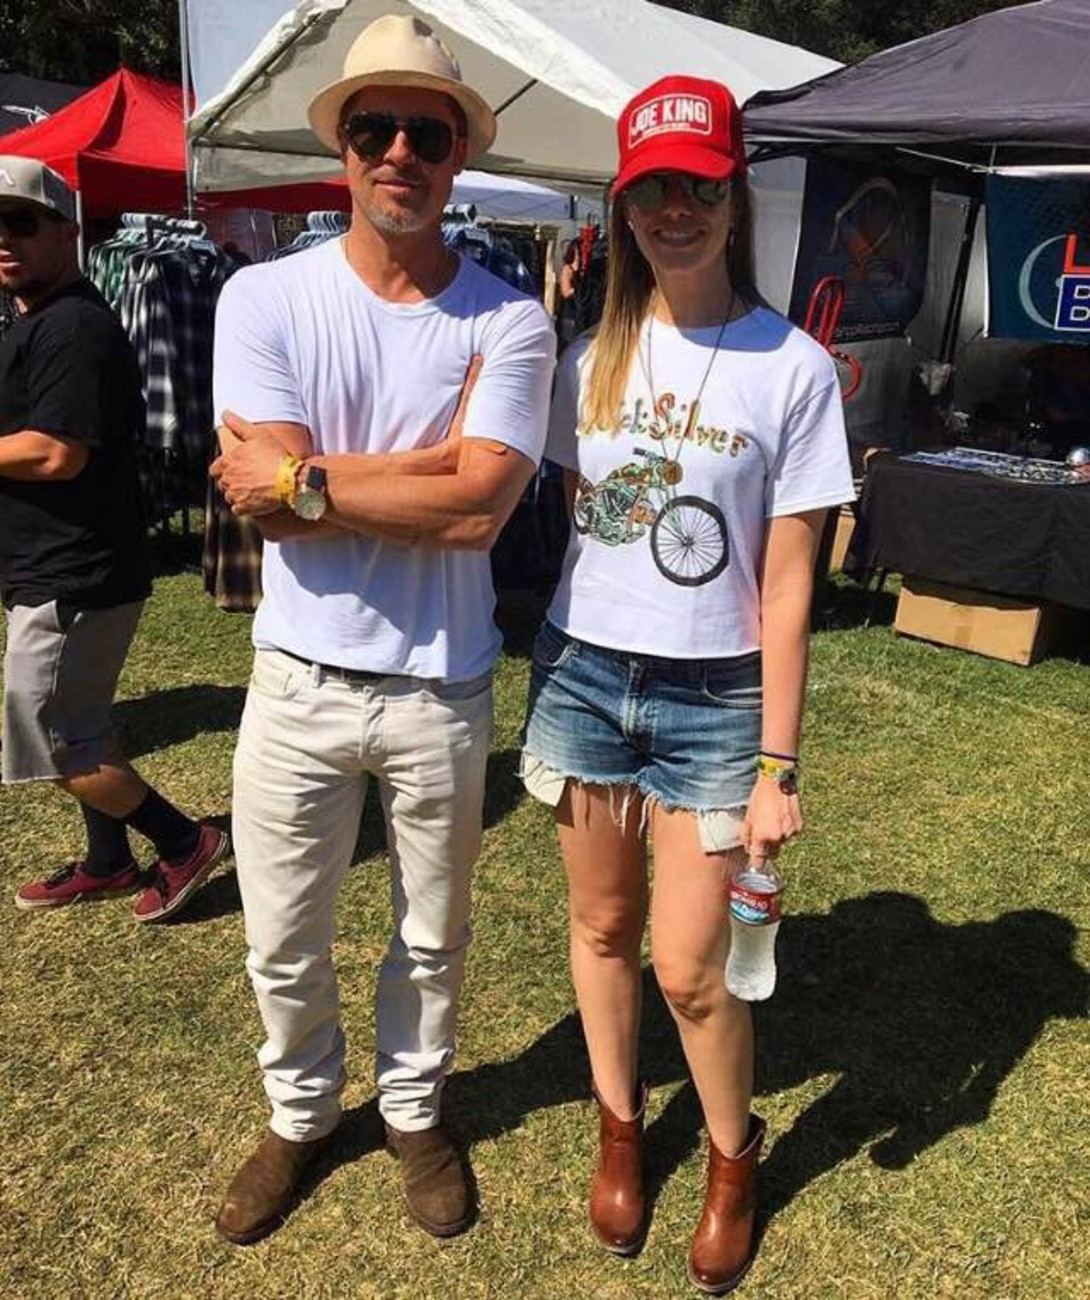 Brad Pitts enjoys some man time, on a sunny Sunday at a motorcycle show in Silverado, CA.  Pictured: Brad Pitt